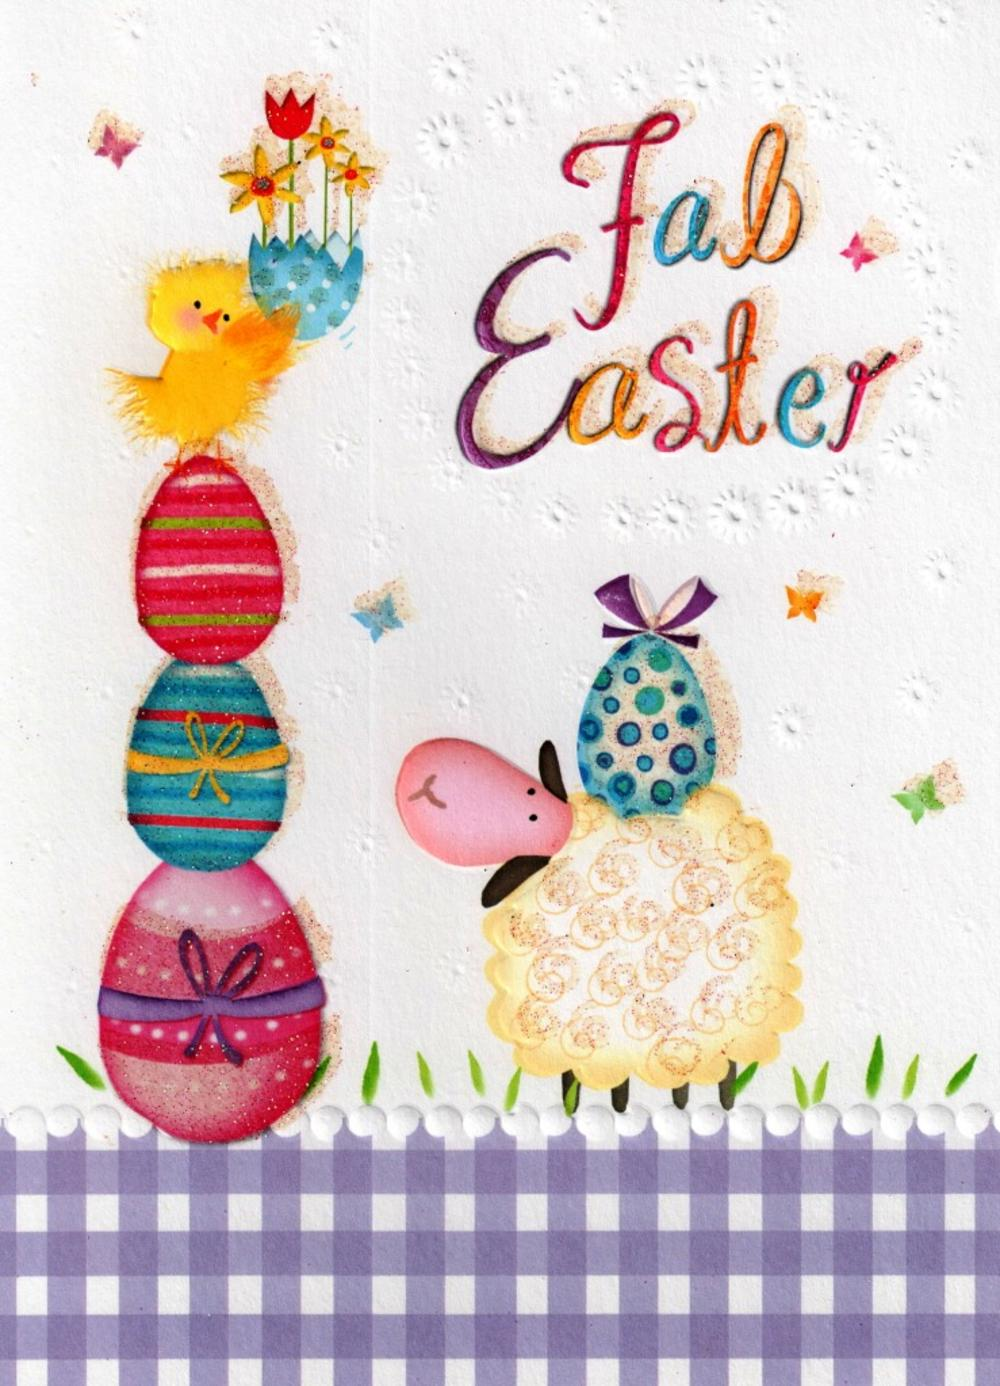 Fab Easter Glitter Finished Greeting Card